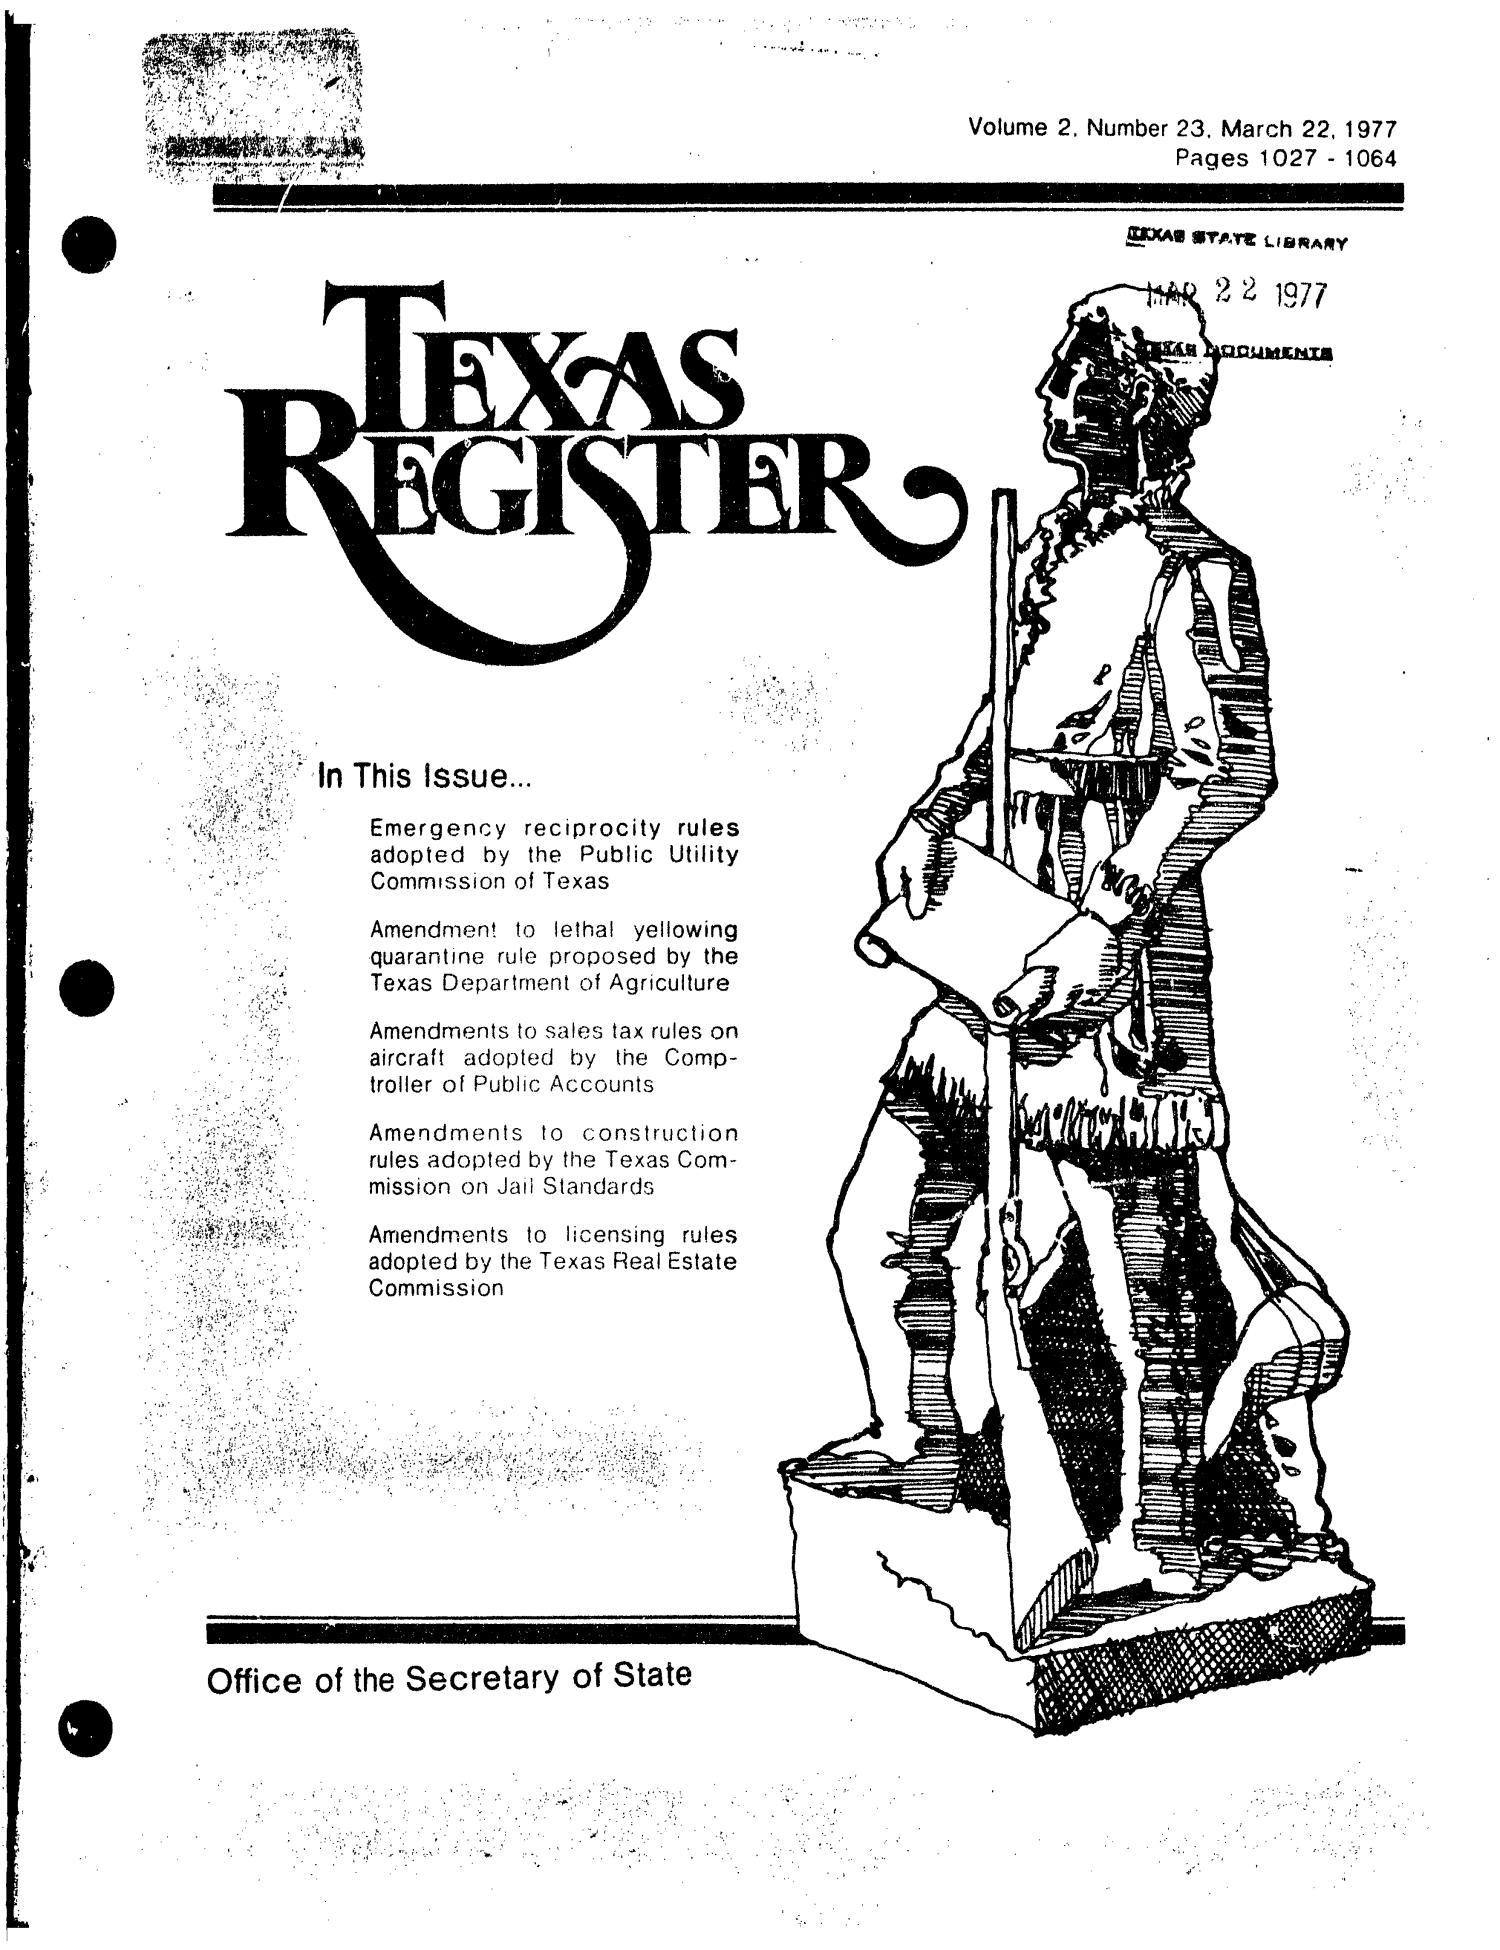 Texas Register, Volume 2, Number 23, Pages 1027-1064, March 22, 1977                                                                                                      Title Page